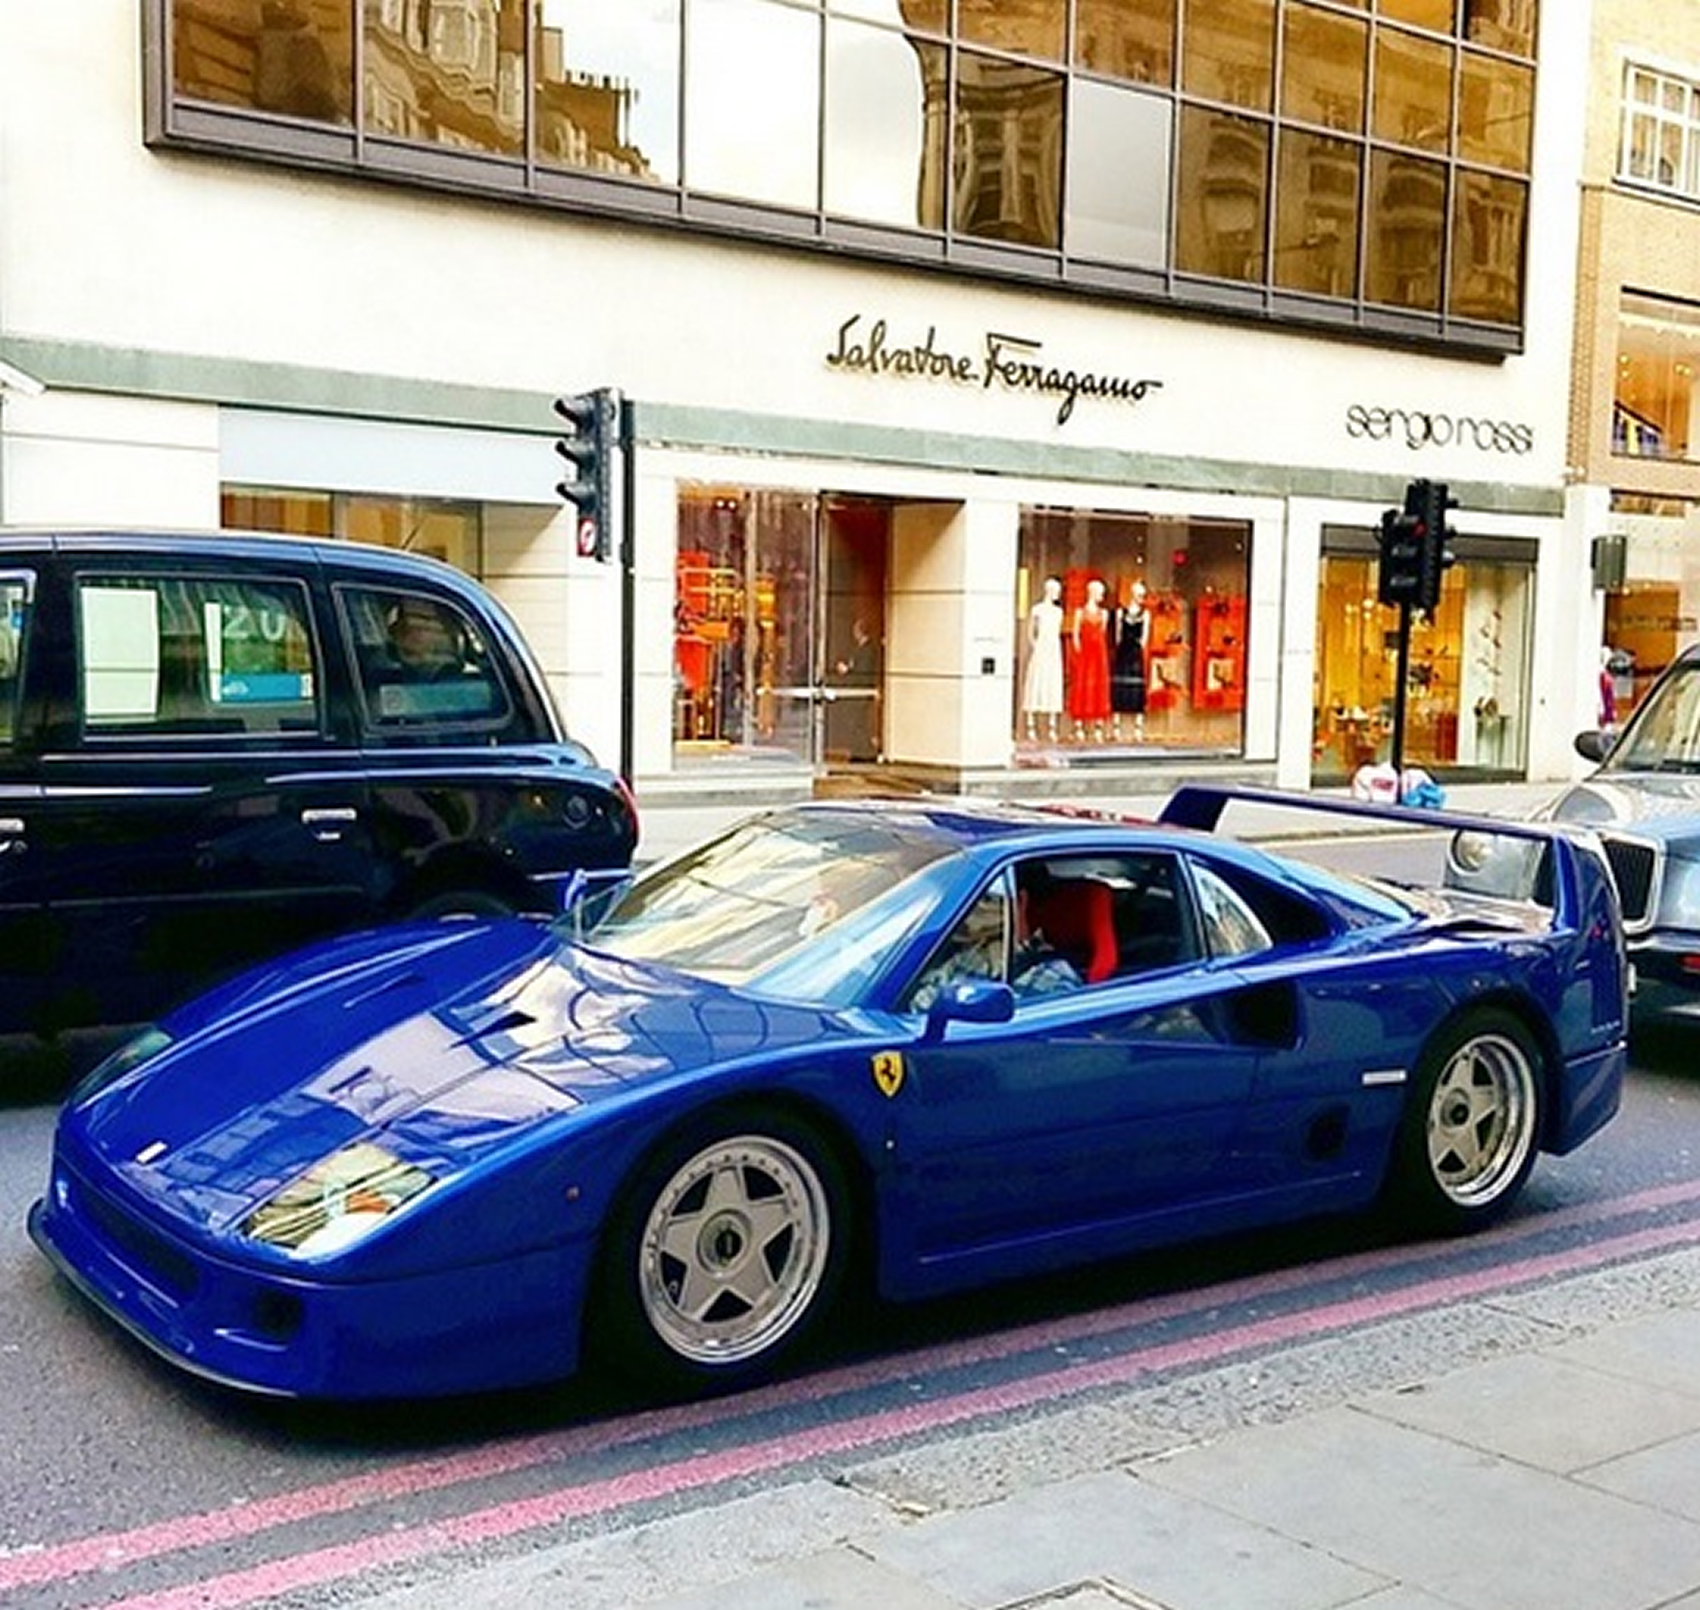 The Only Ferrari F40 In Aqua Blue Spotted Bhp Cars Performance Supercar News Information